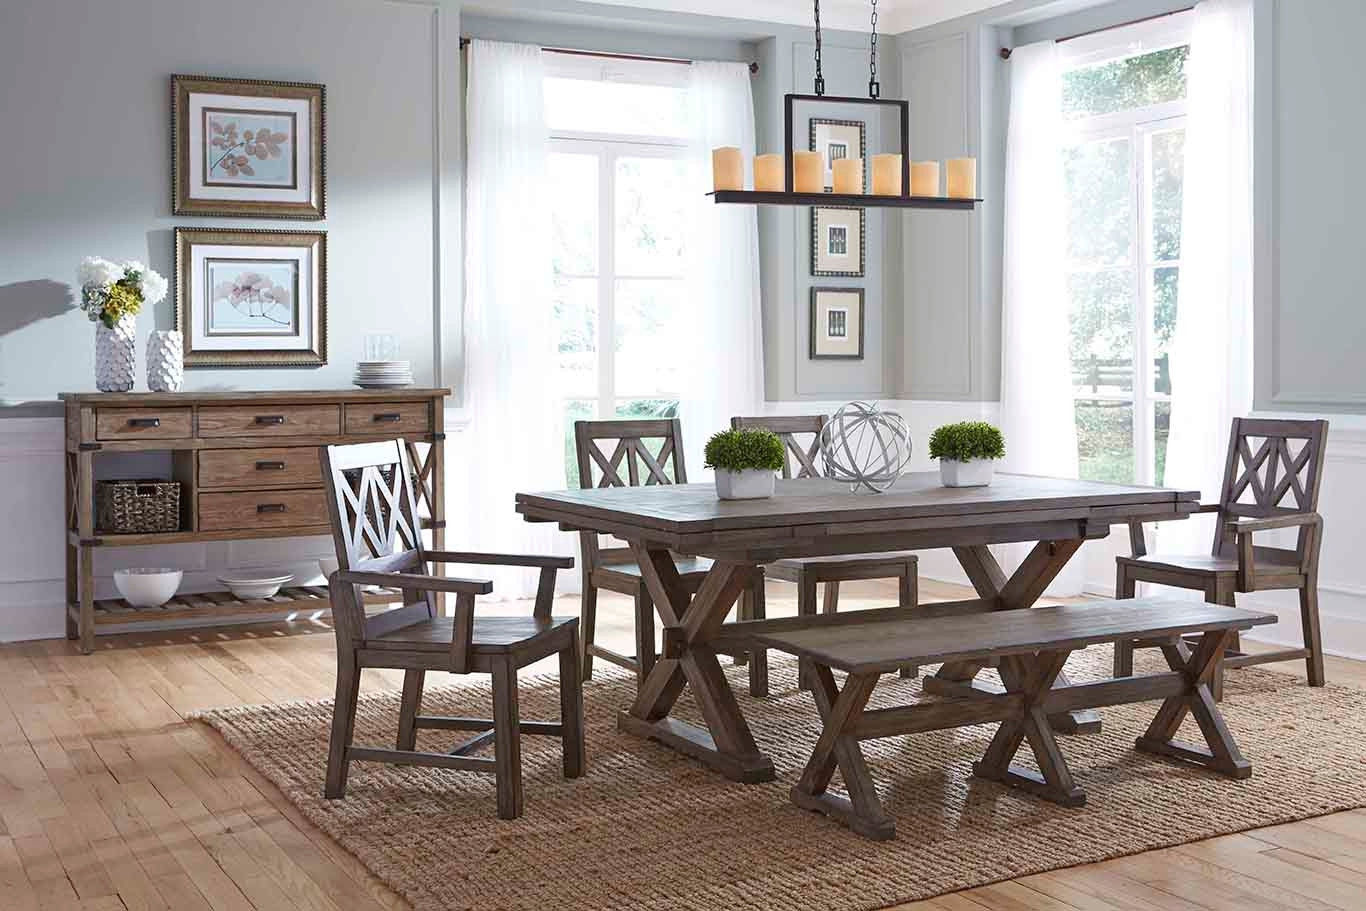 rustic dining chairs - 908×800